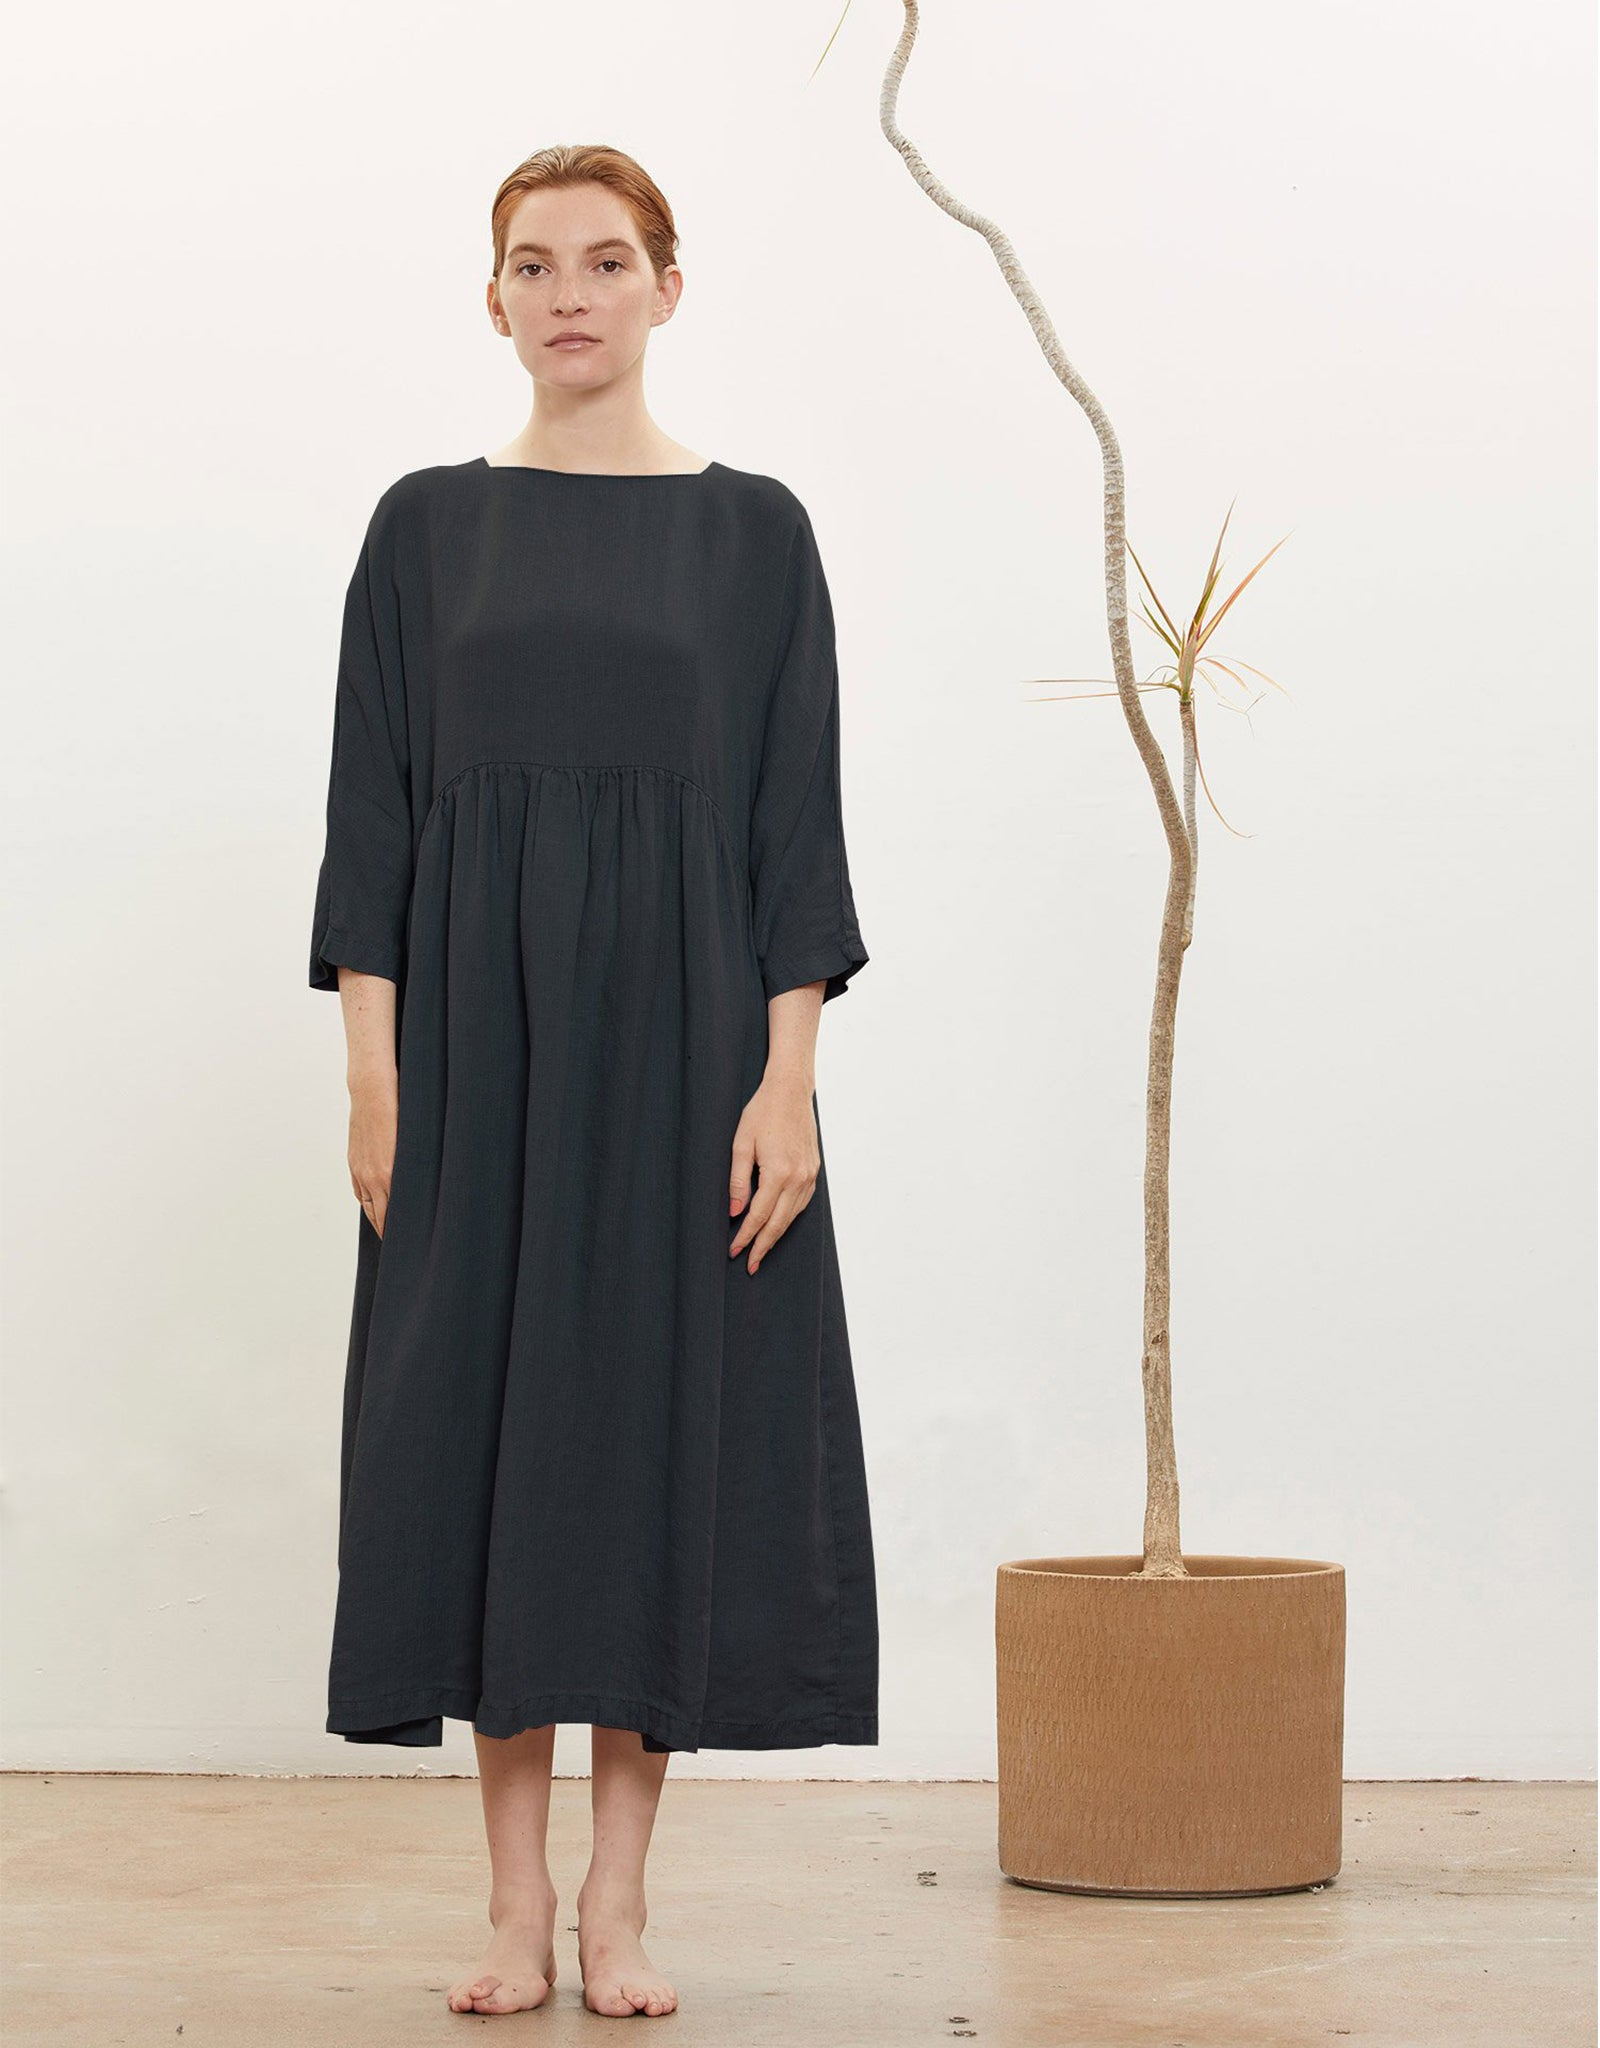 Model wears Black Crane Tradi Dress in Black. Available at FAWN Toronto.